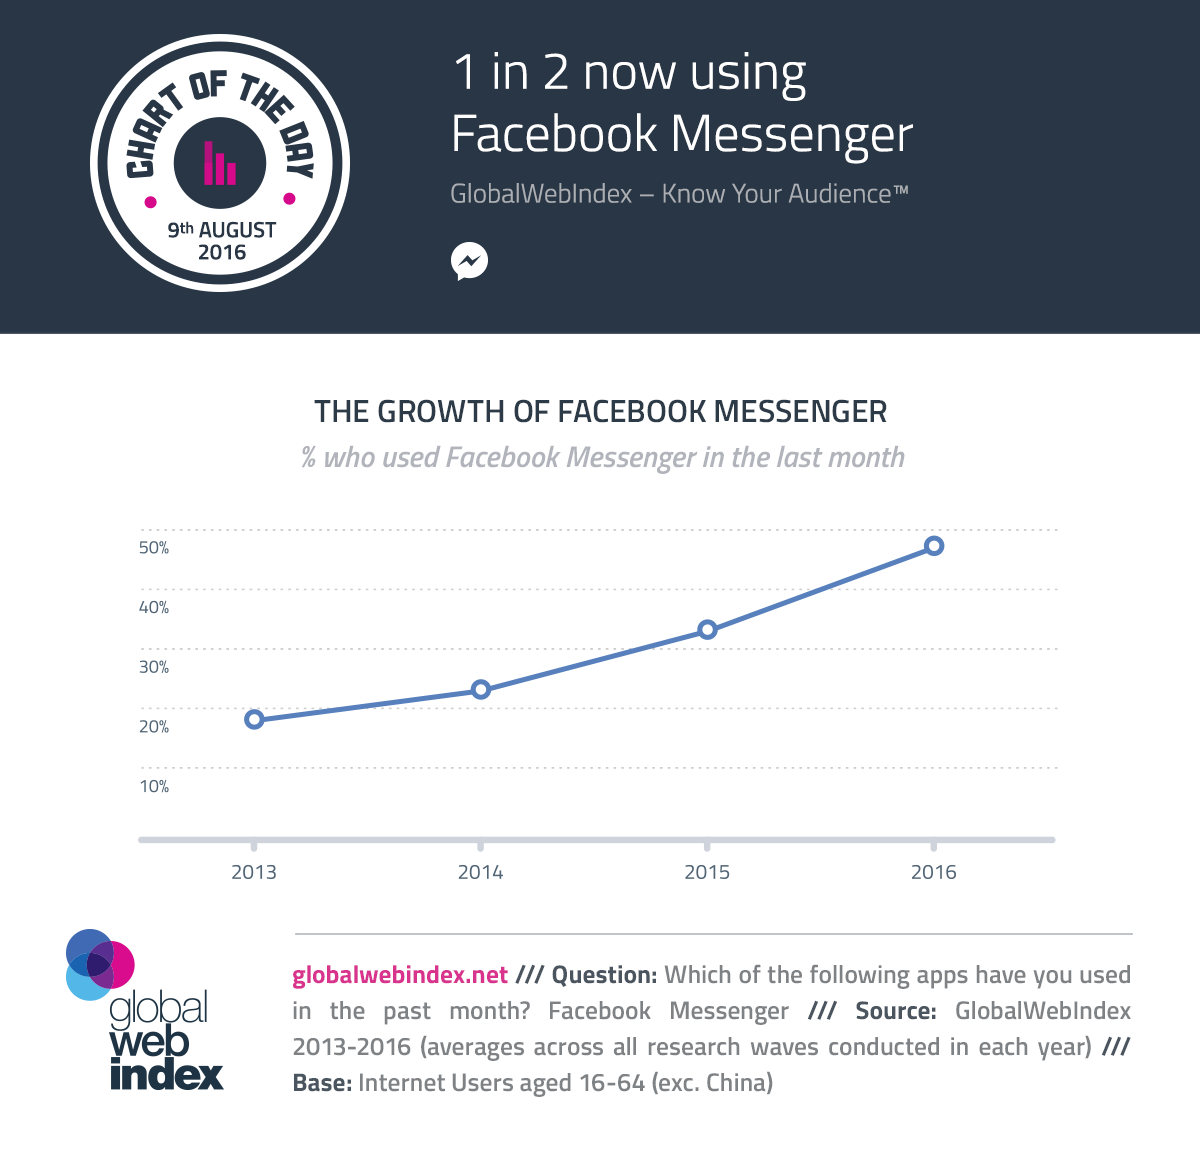 1 in 2 now using Facebook Messenger